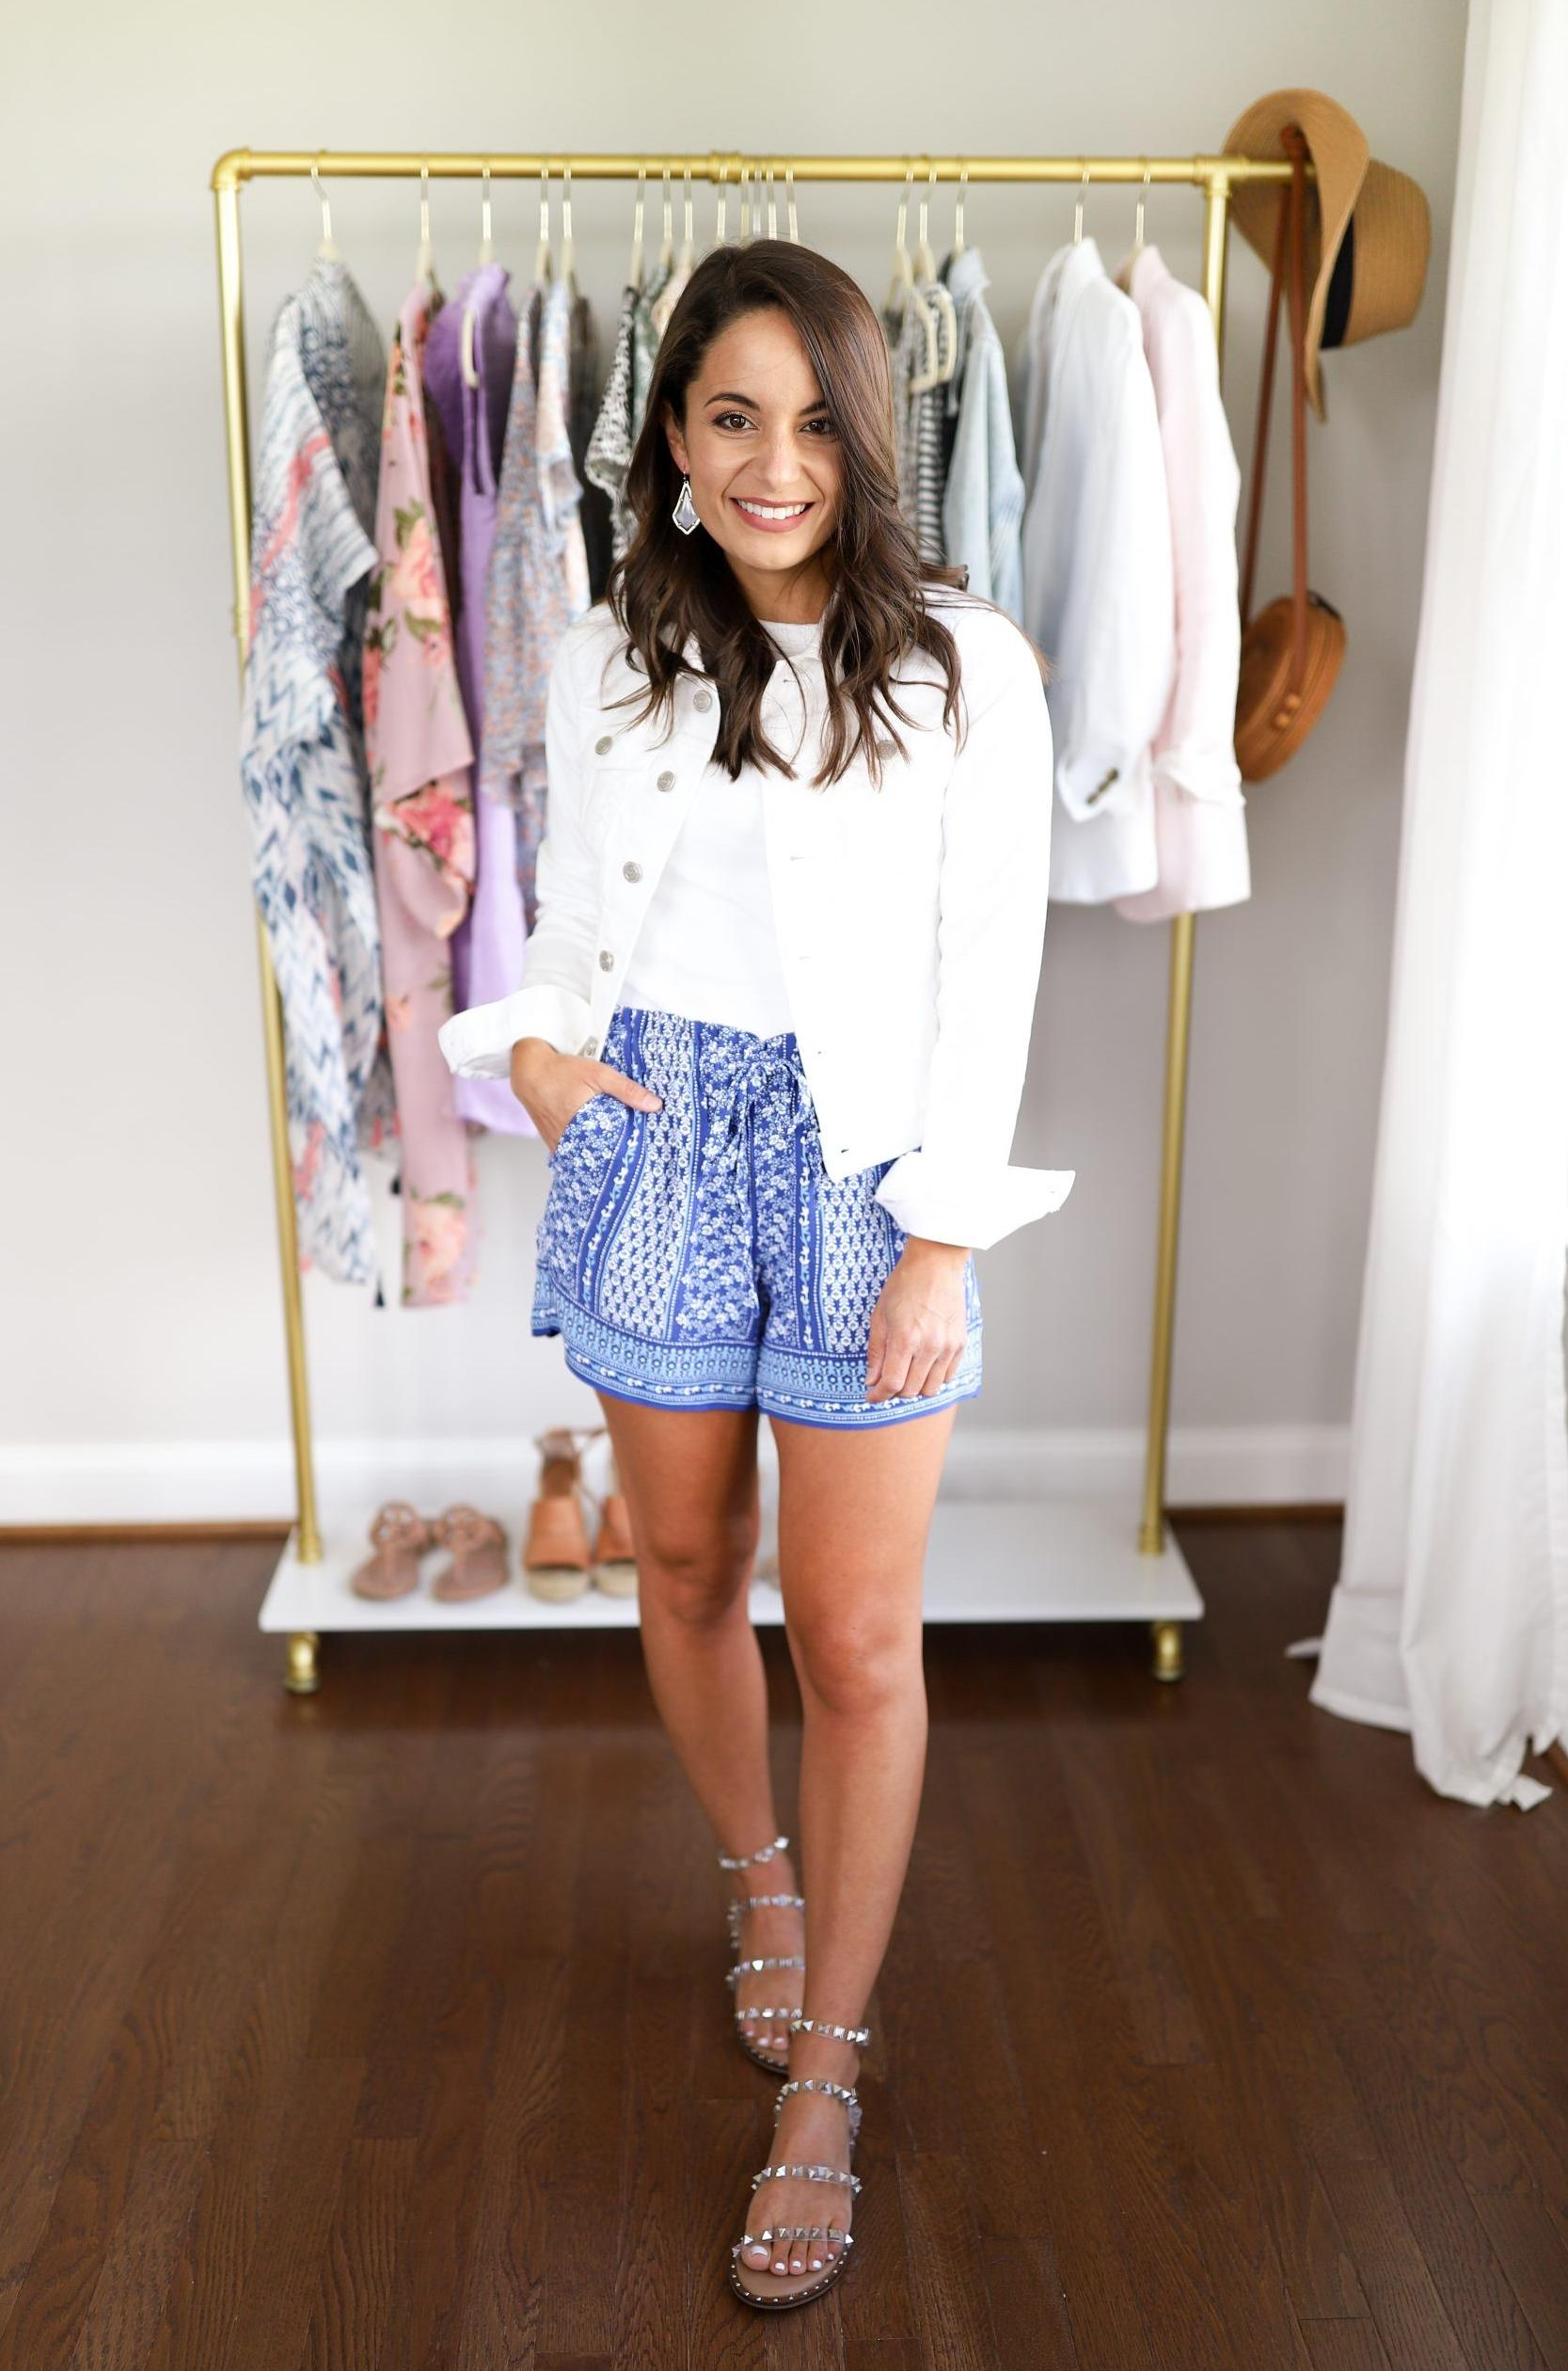 Paperbag Shorts Trend Is Back: 17 Ways Wearing Them 2022